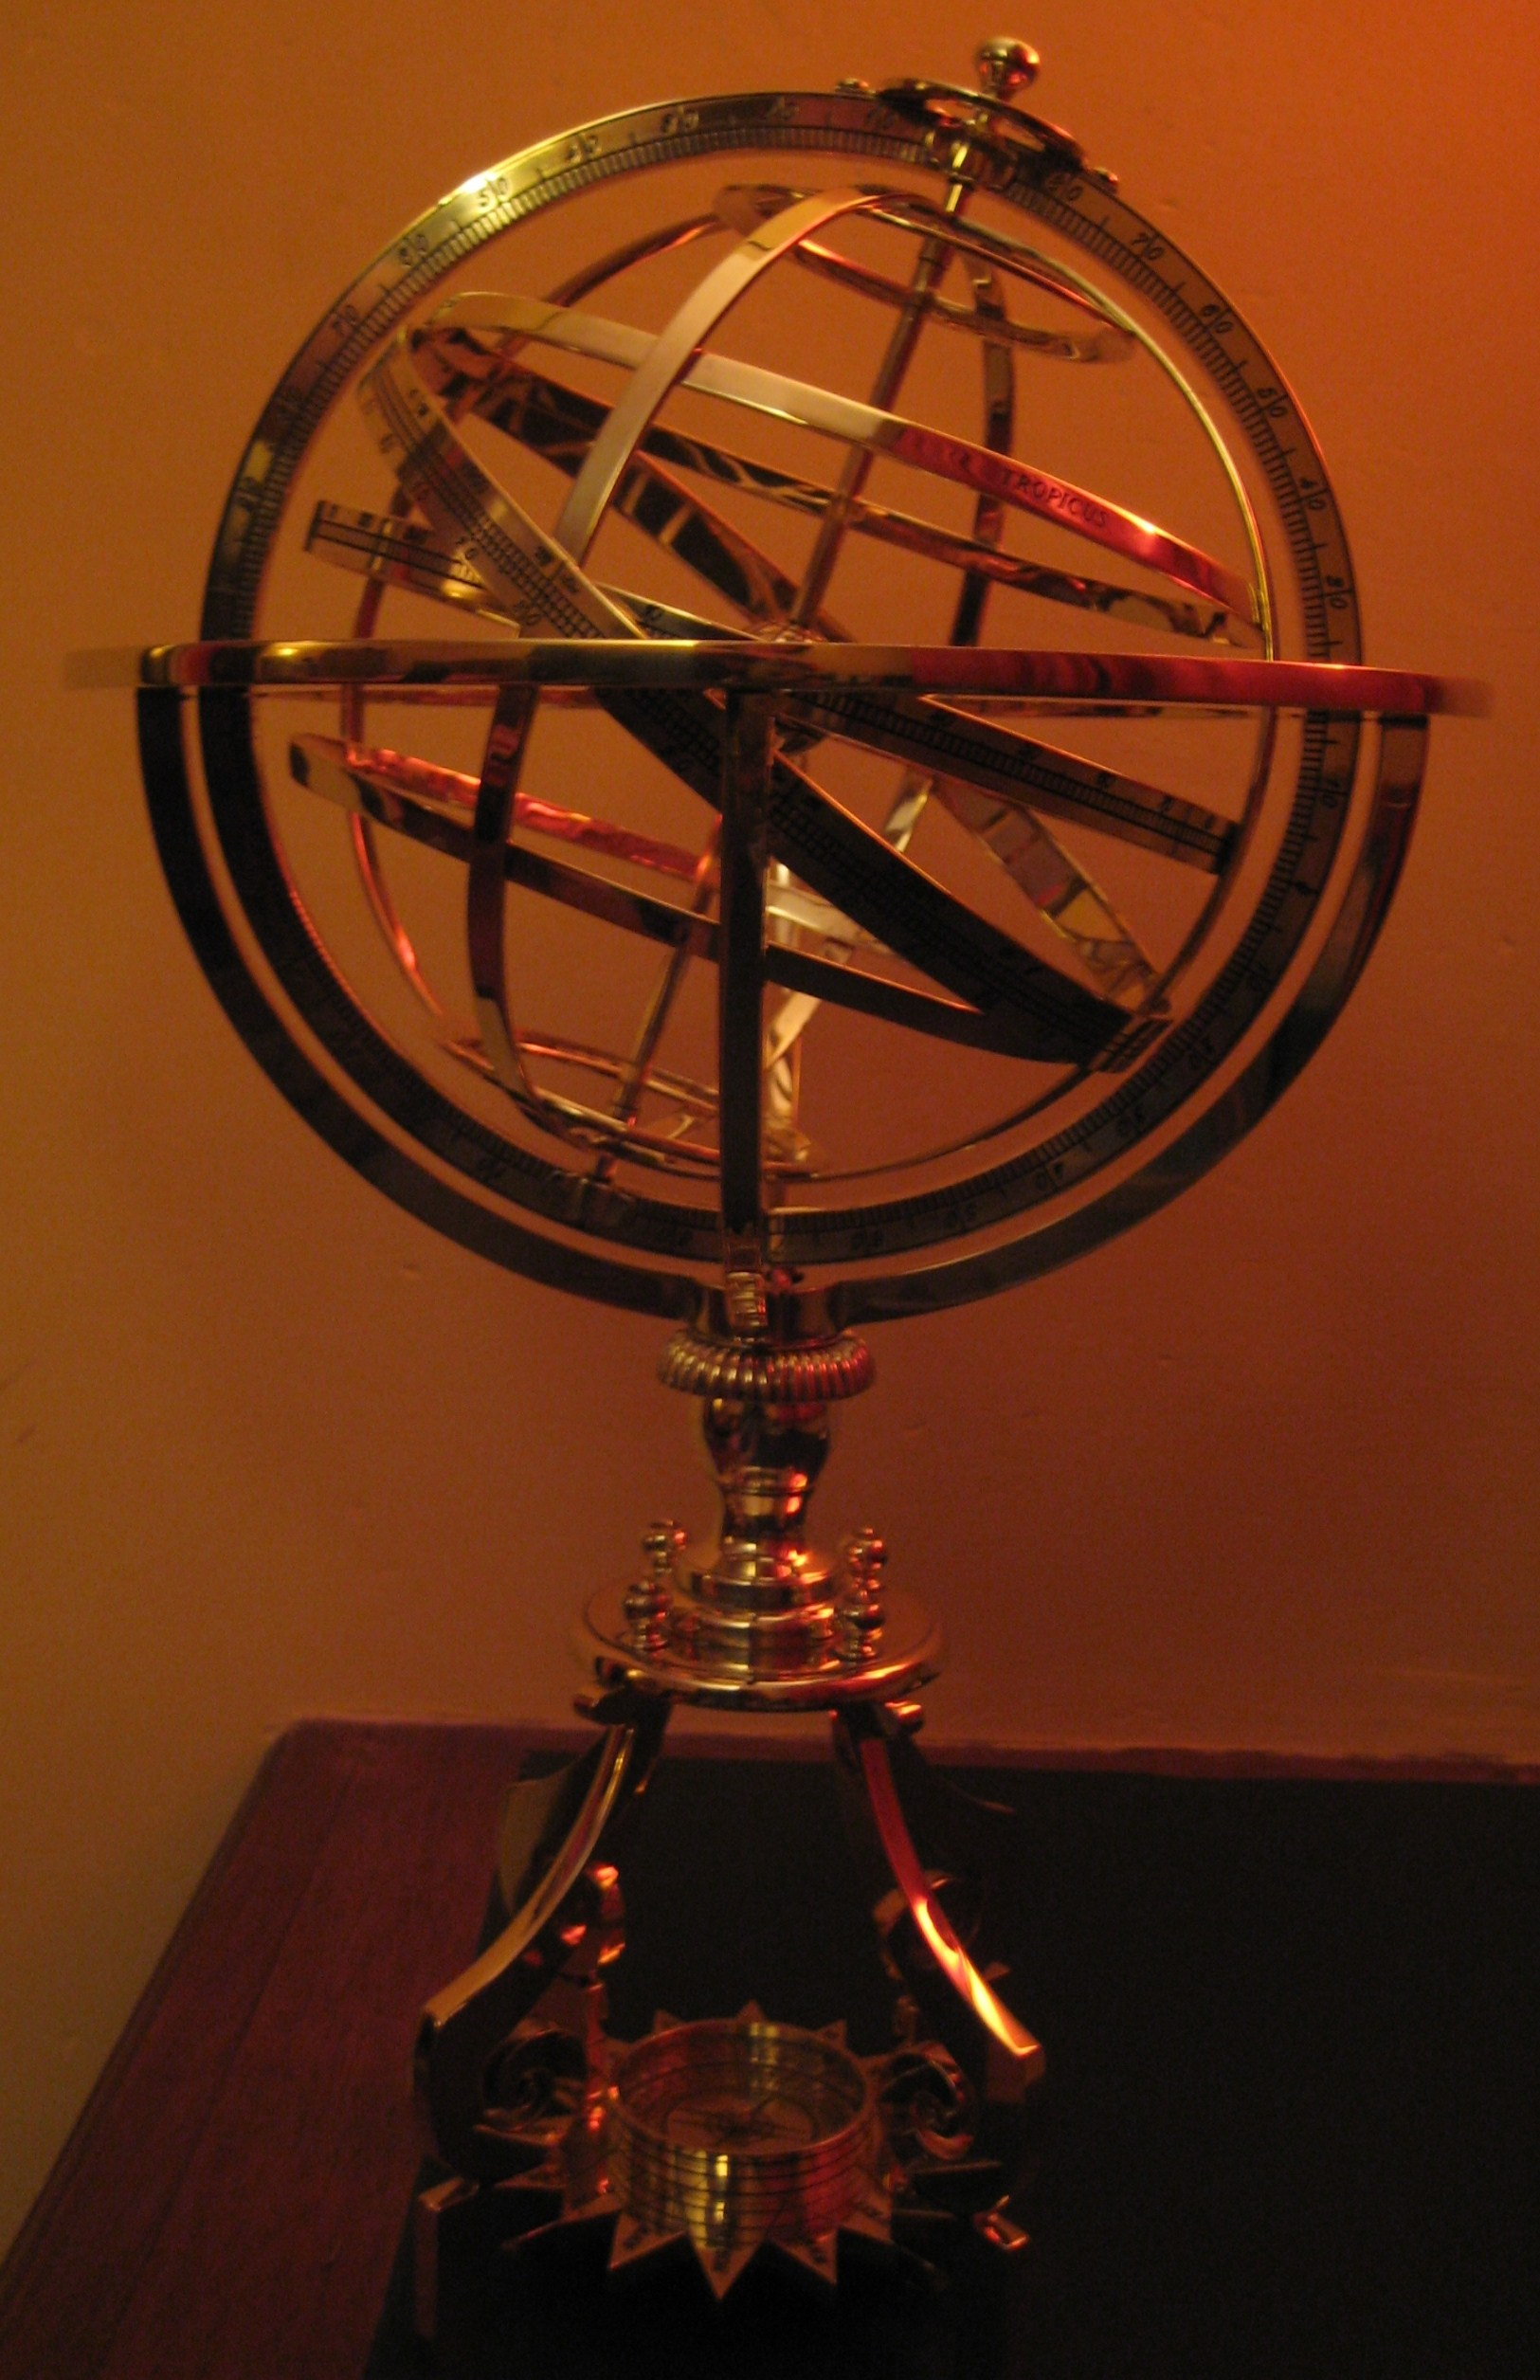 Orrery Maker Orreries And Armillary Spheres For Sale